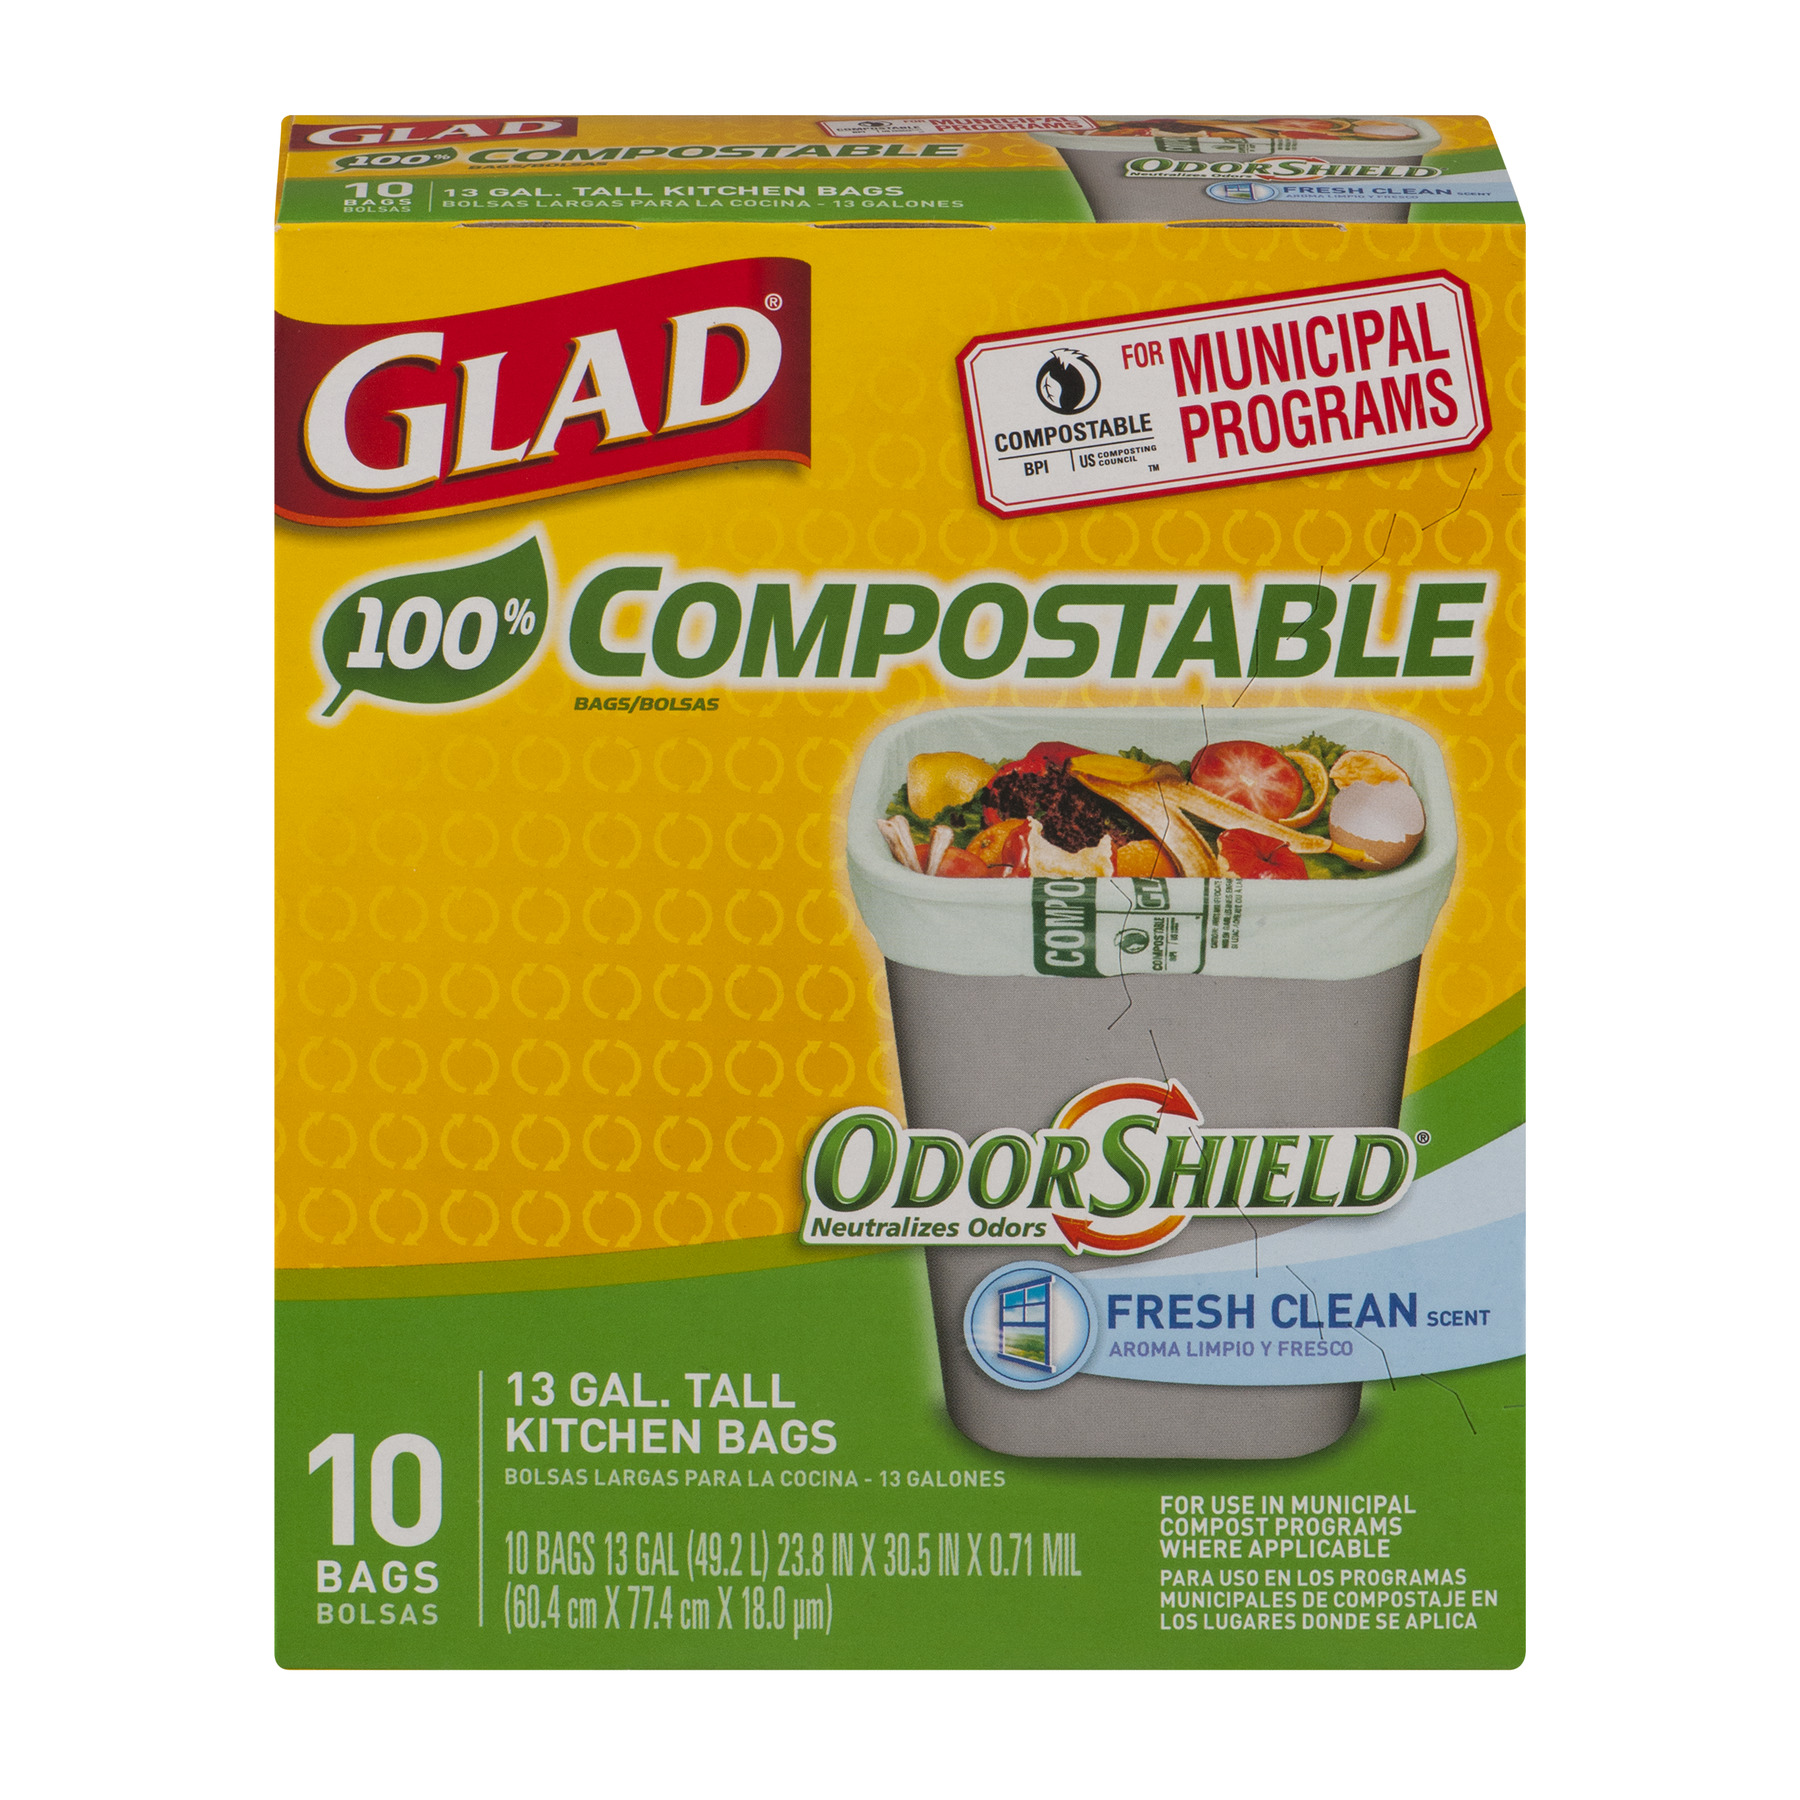 Glad 100% Compostable OdorShield Fresh Clean Tall Kitchen Trash Bags, 13 gallon, 10 count